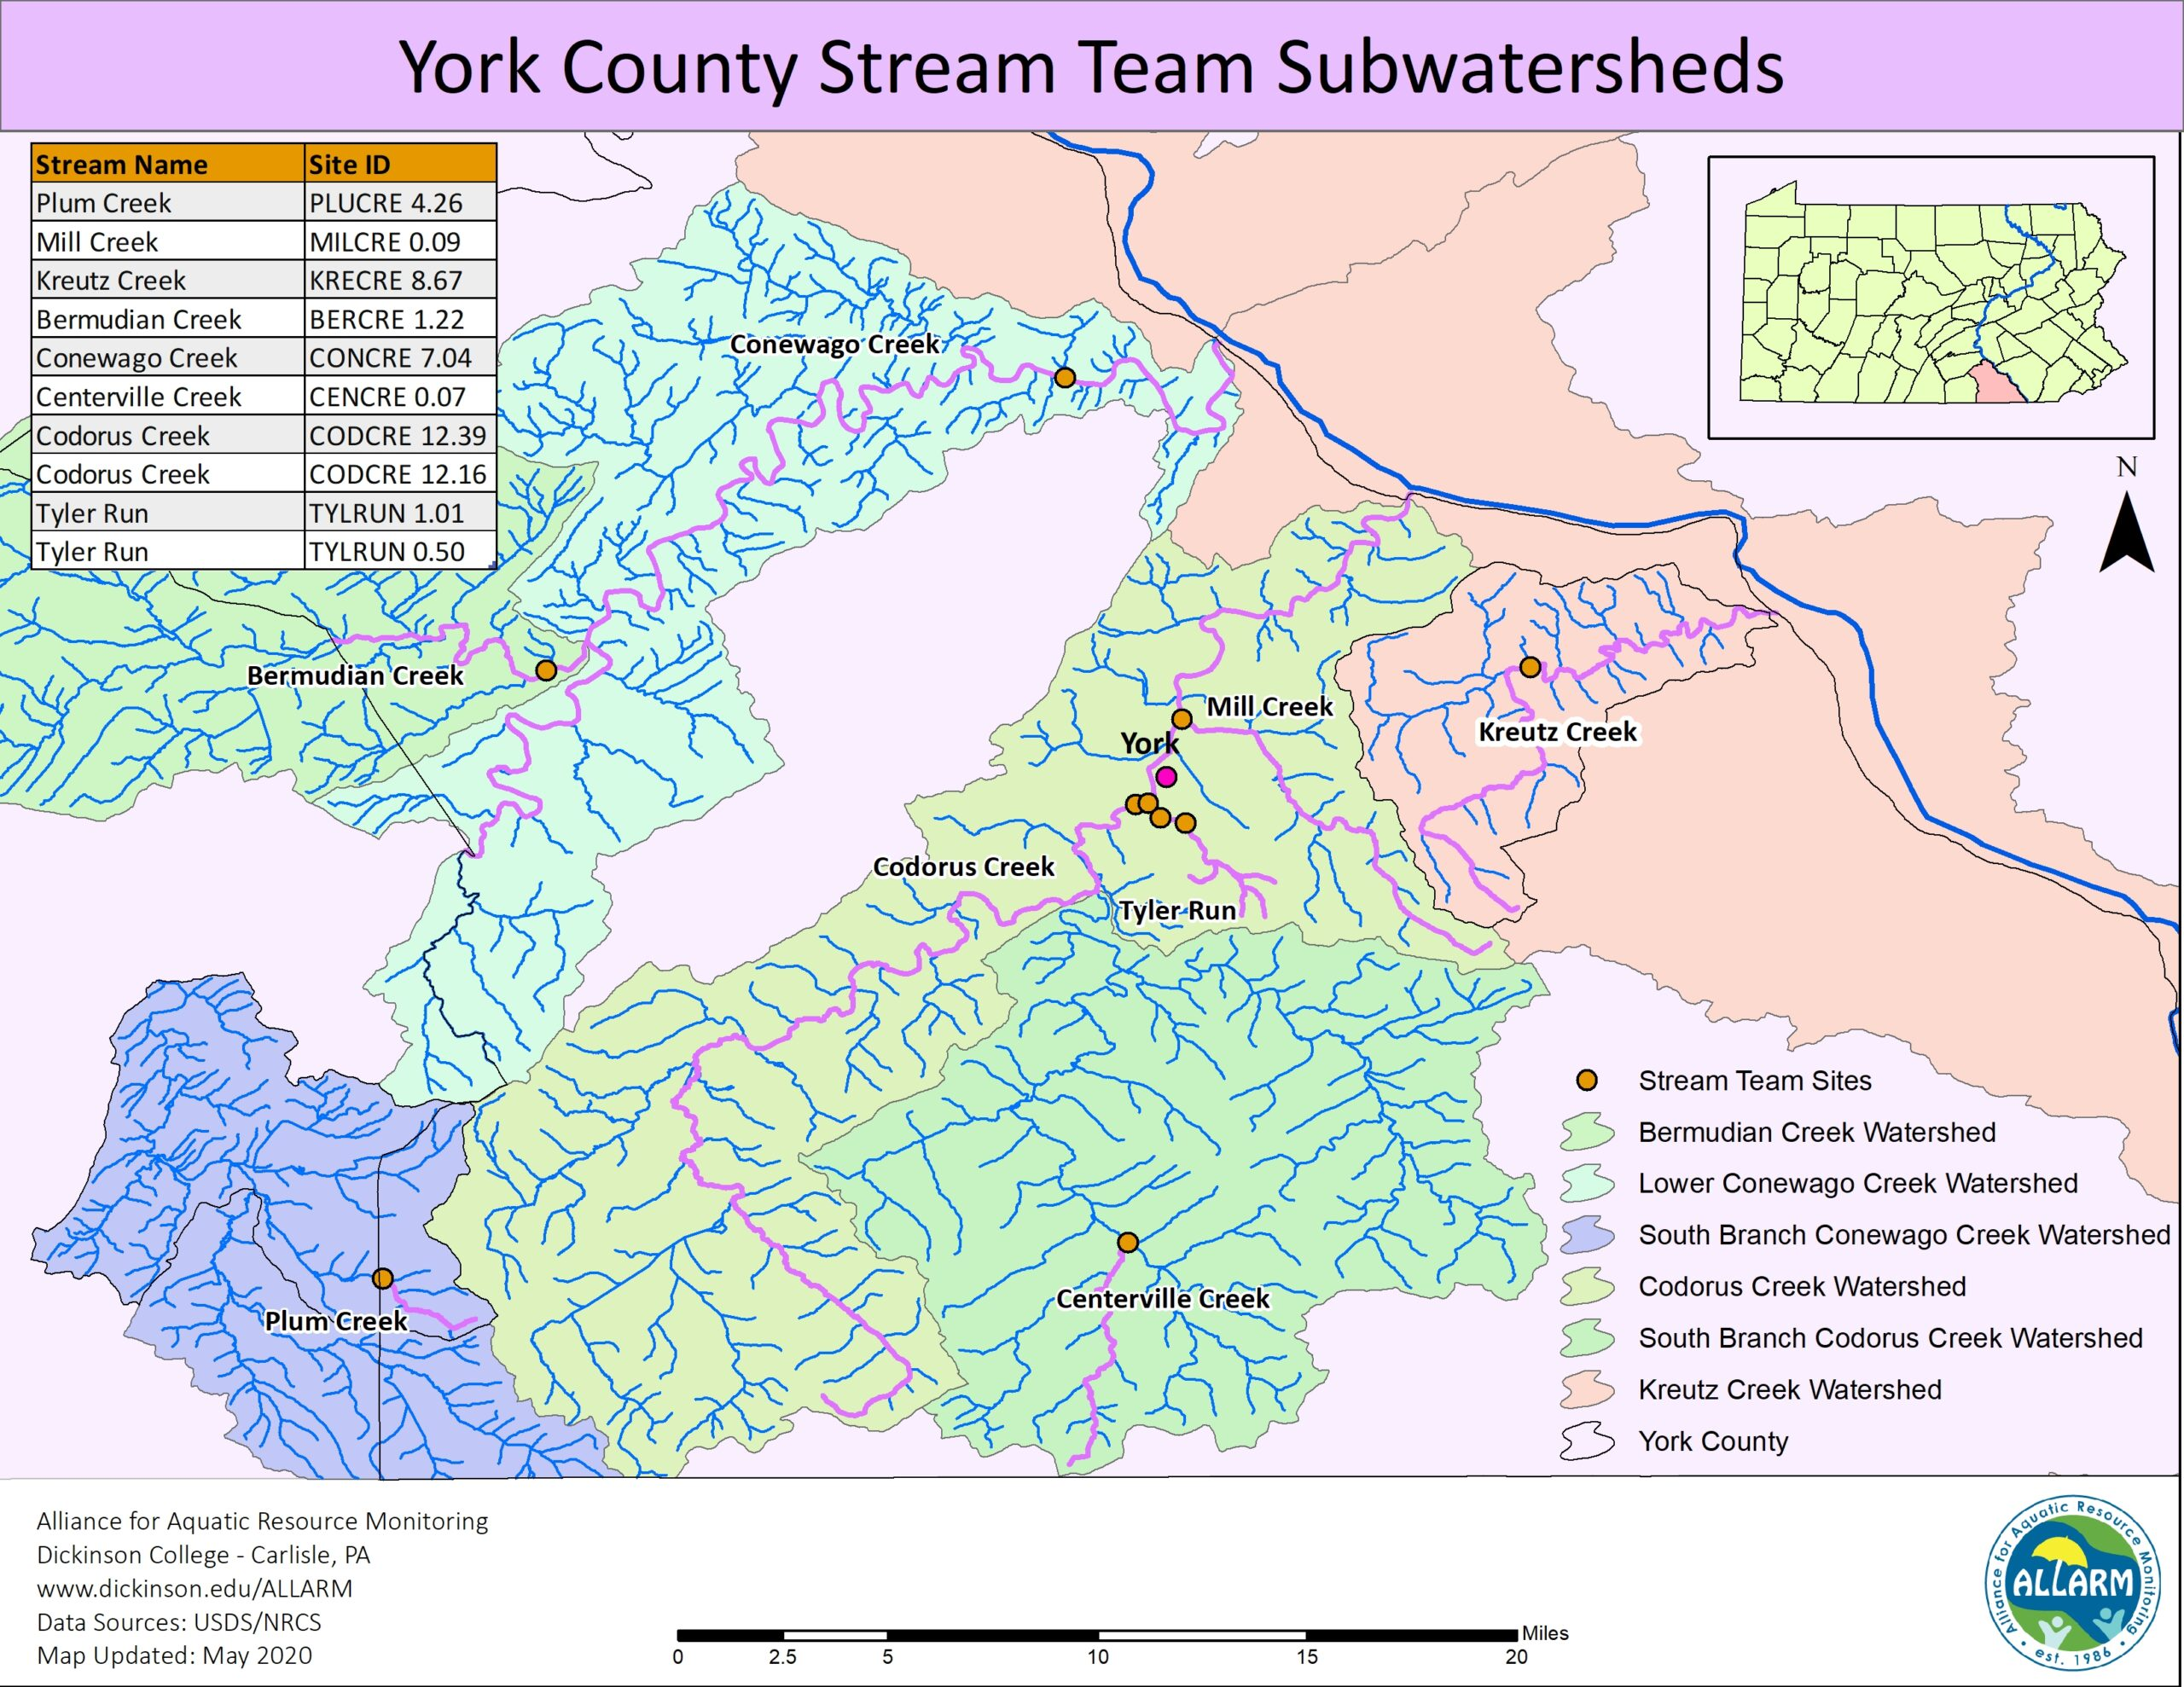 York County, PA watersheds map